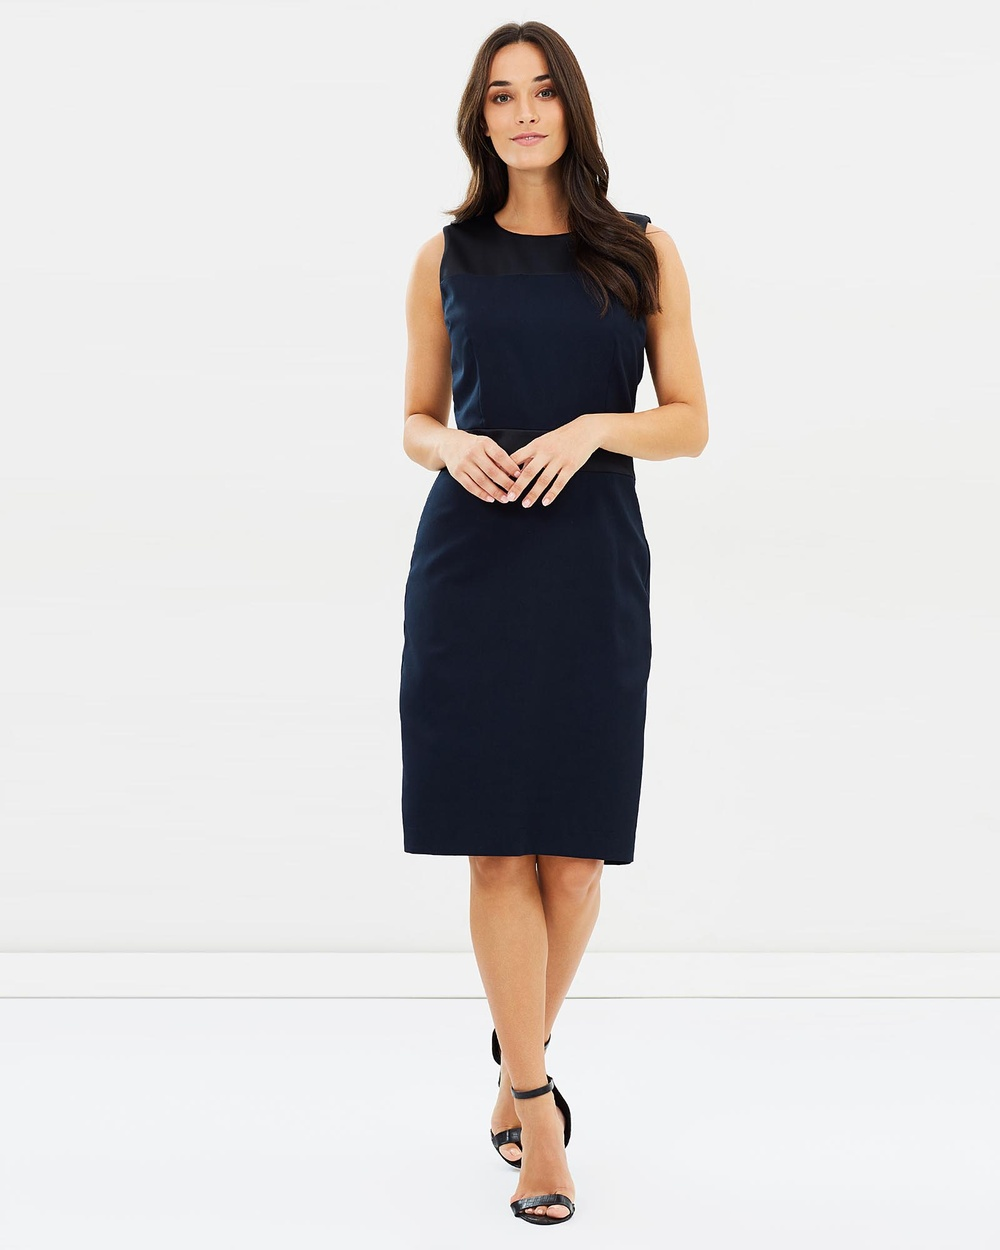 Farage French Navy Gemma Dress